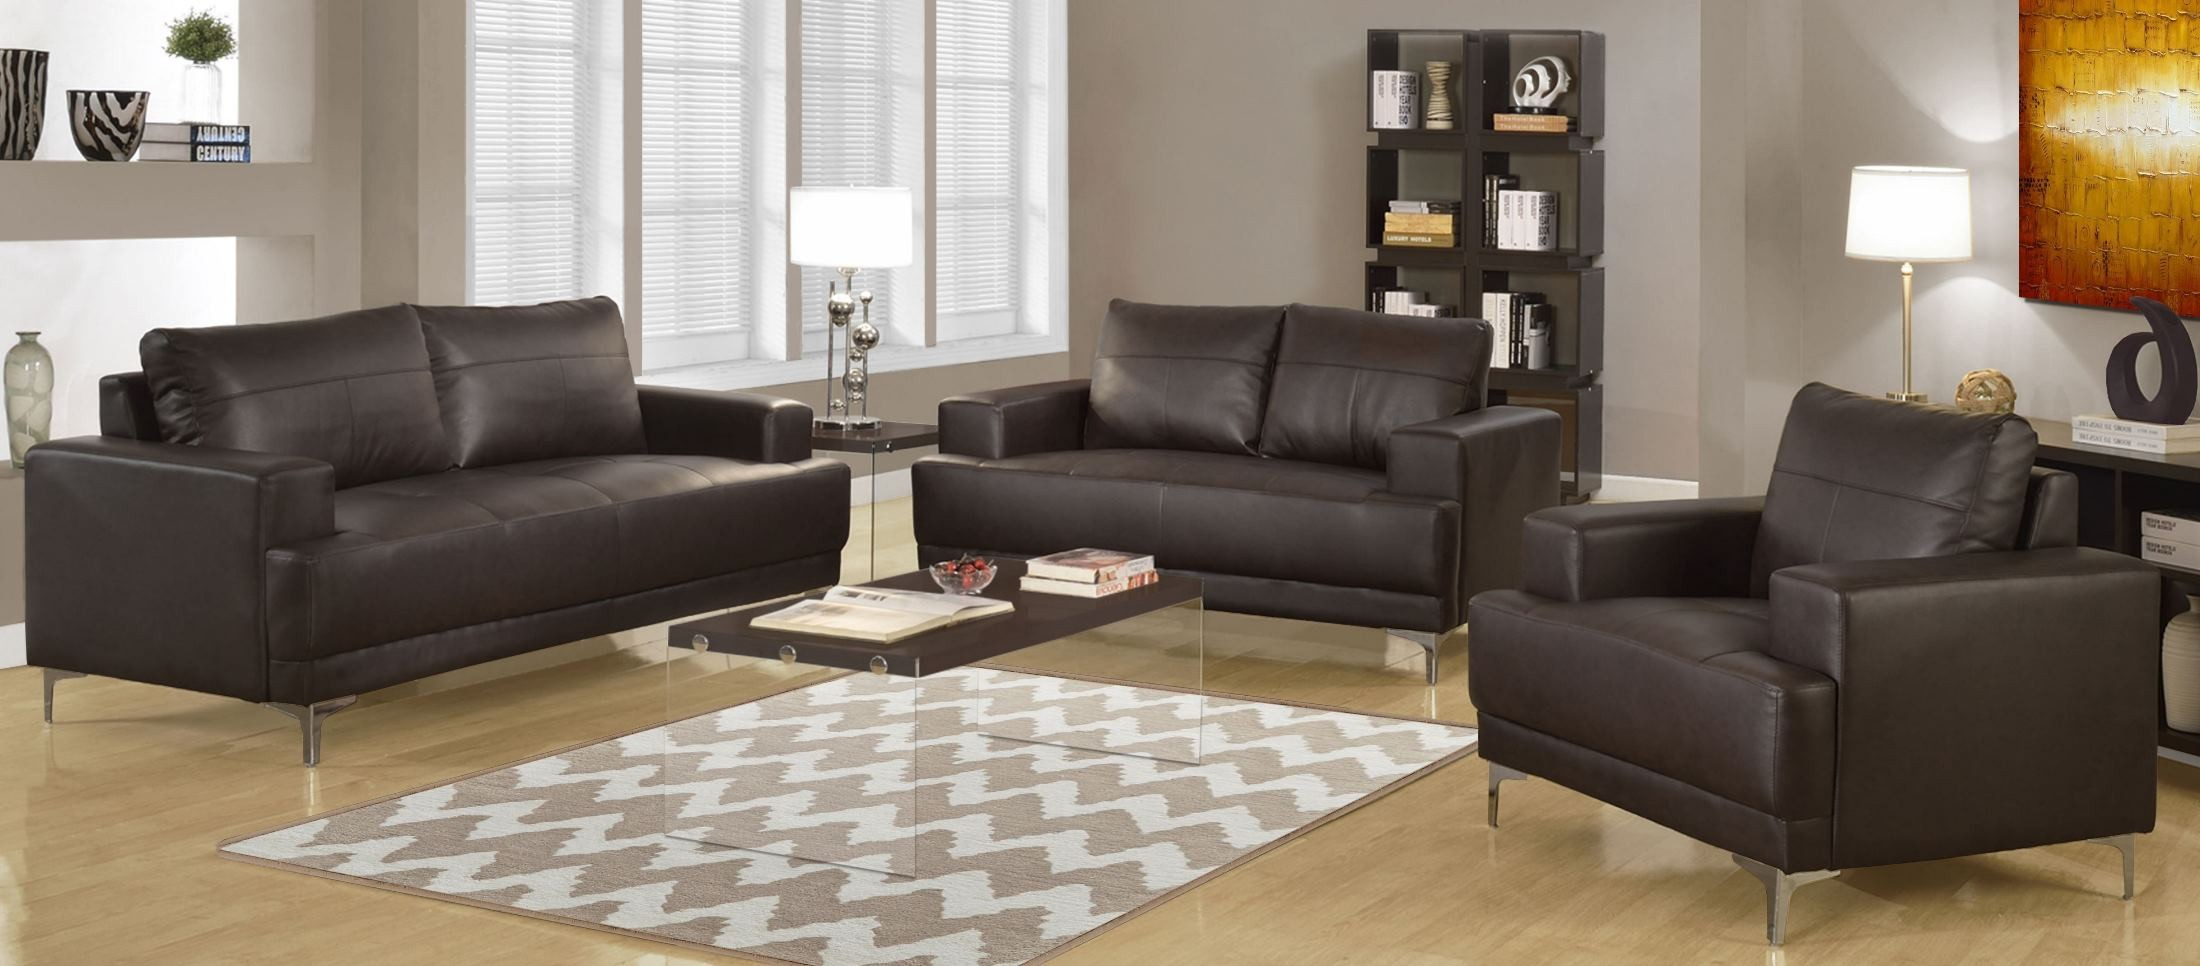 Furniture For Living Rooms: Brown Bonded Leather Living Room Set From Monarch